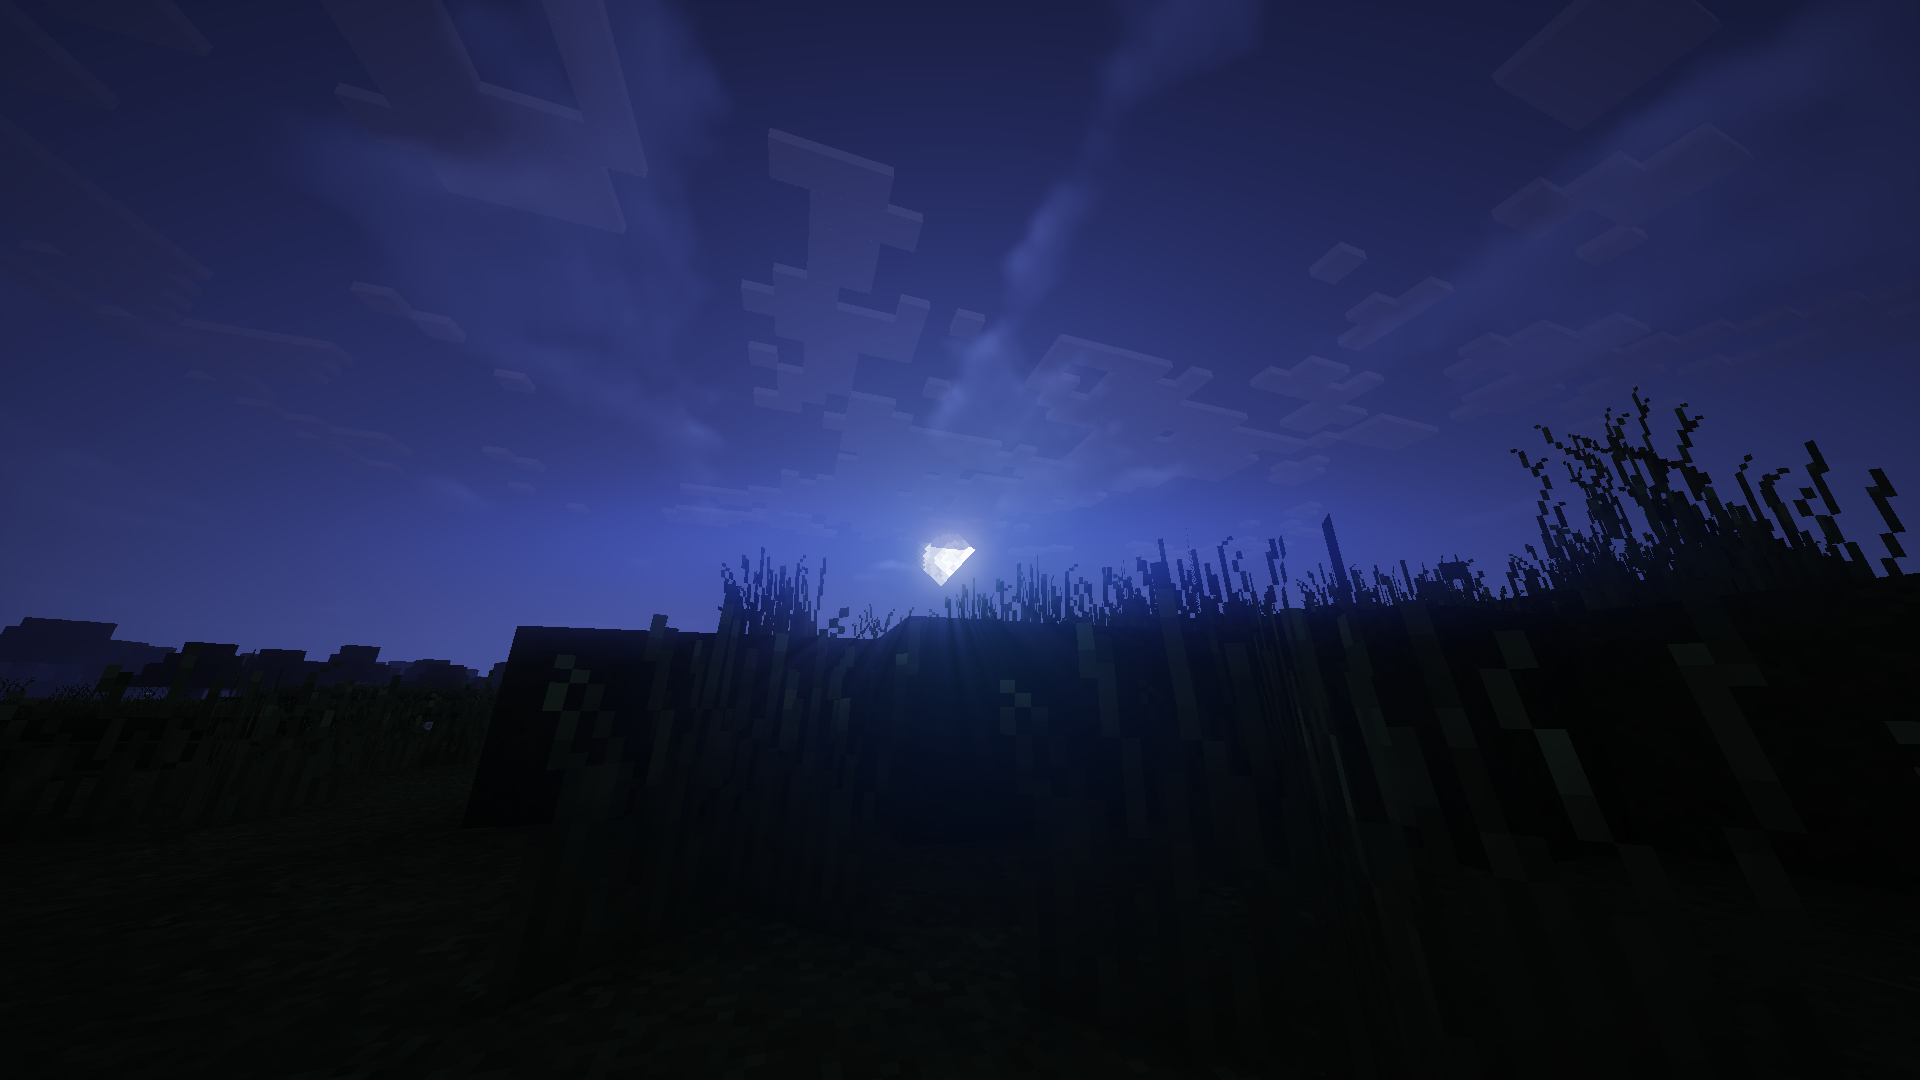 Cool Wallpaper Minecraft 1080p - minecraft-shaders-background-18  Gallery_93785.jpg